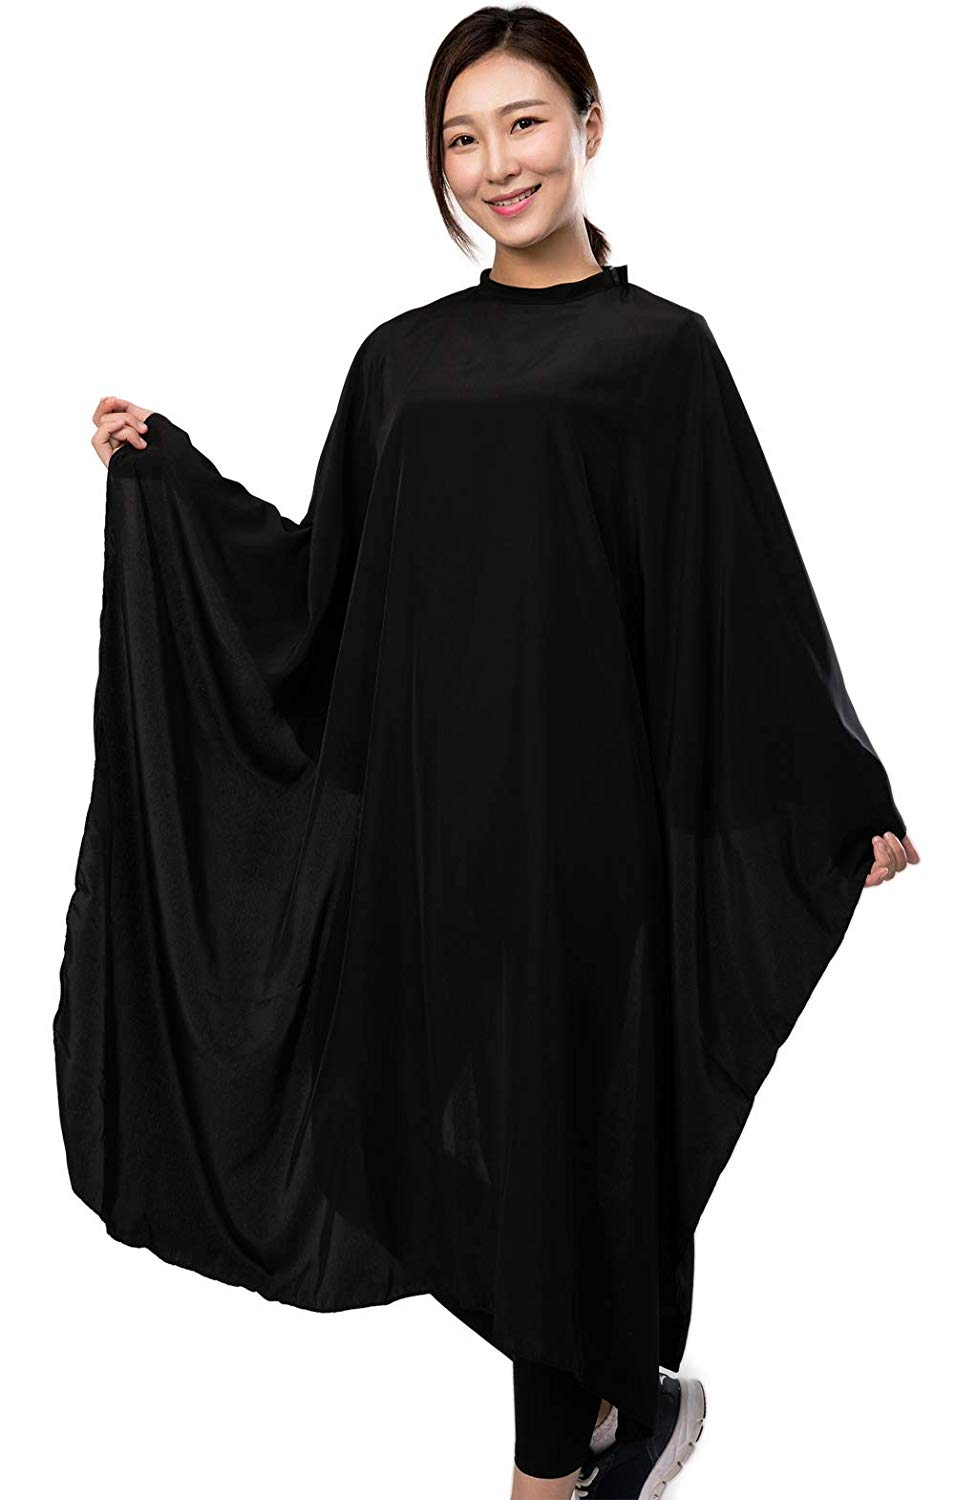 Barber Hair Cutting Cape